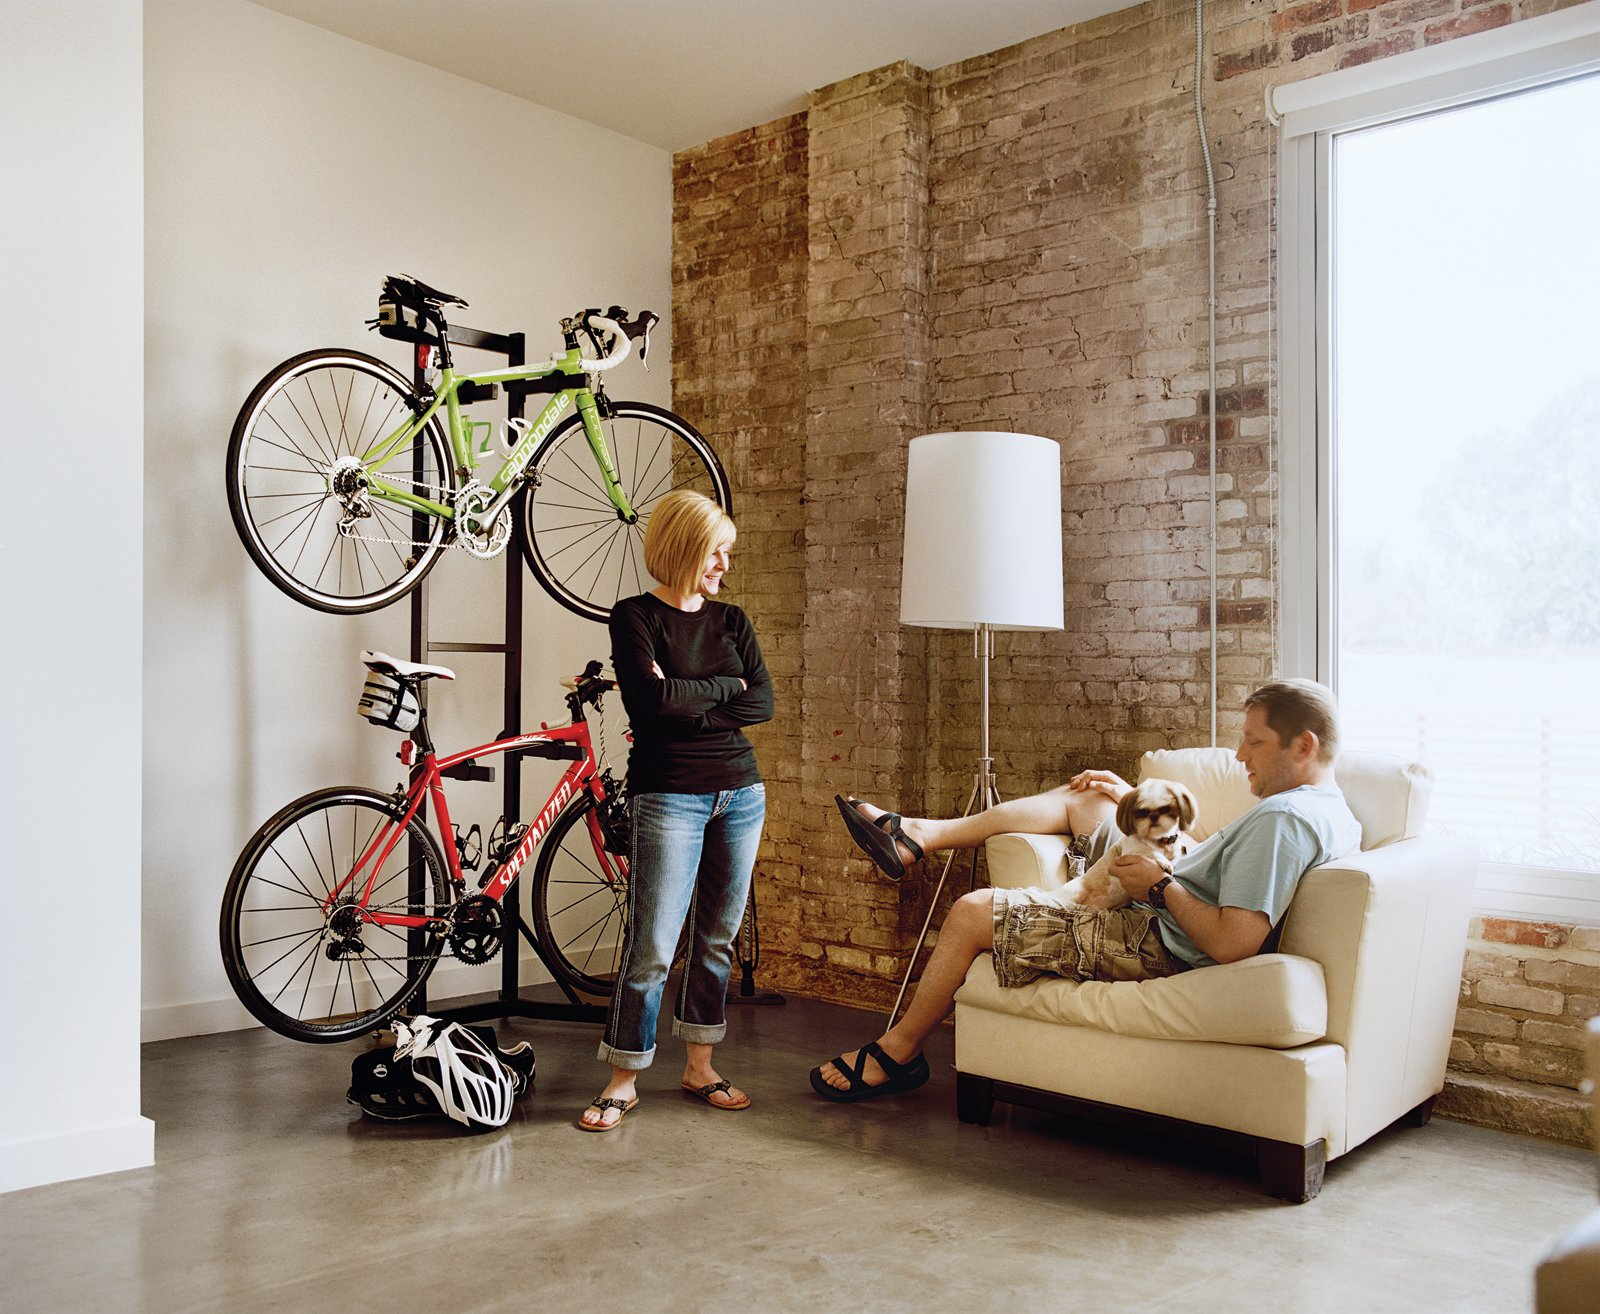 """Sofa, Storage Room, and Shelves Storage Type Loft B tenants Melissa and Keith Bishop downsized from a 3,000 square foot space to a cozy 720 square foot loft. """"We downsized our lives,"""" Melissa says. """"We streamlined.""""  Photo 1 of 1 in Melissa and Keith Bishop, Loft B"""